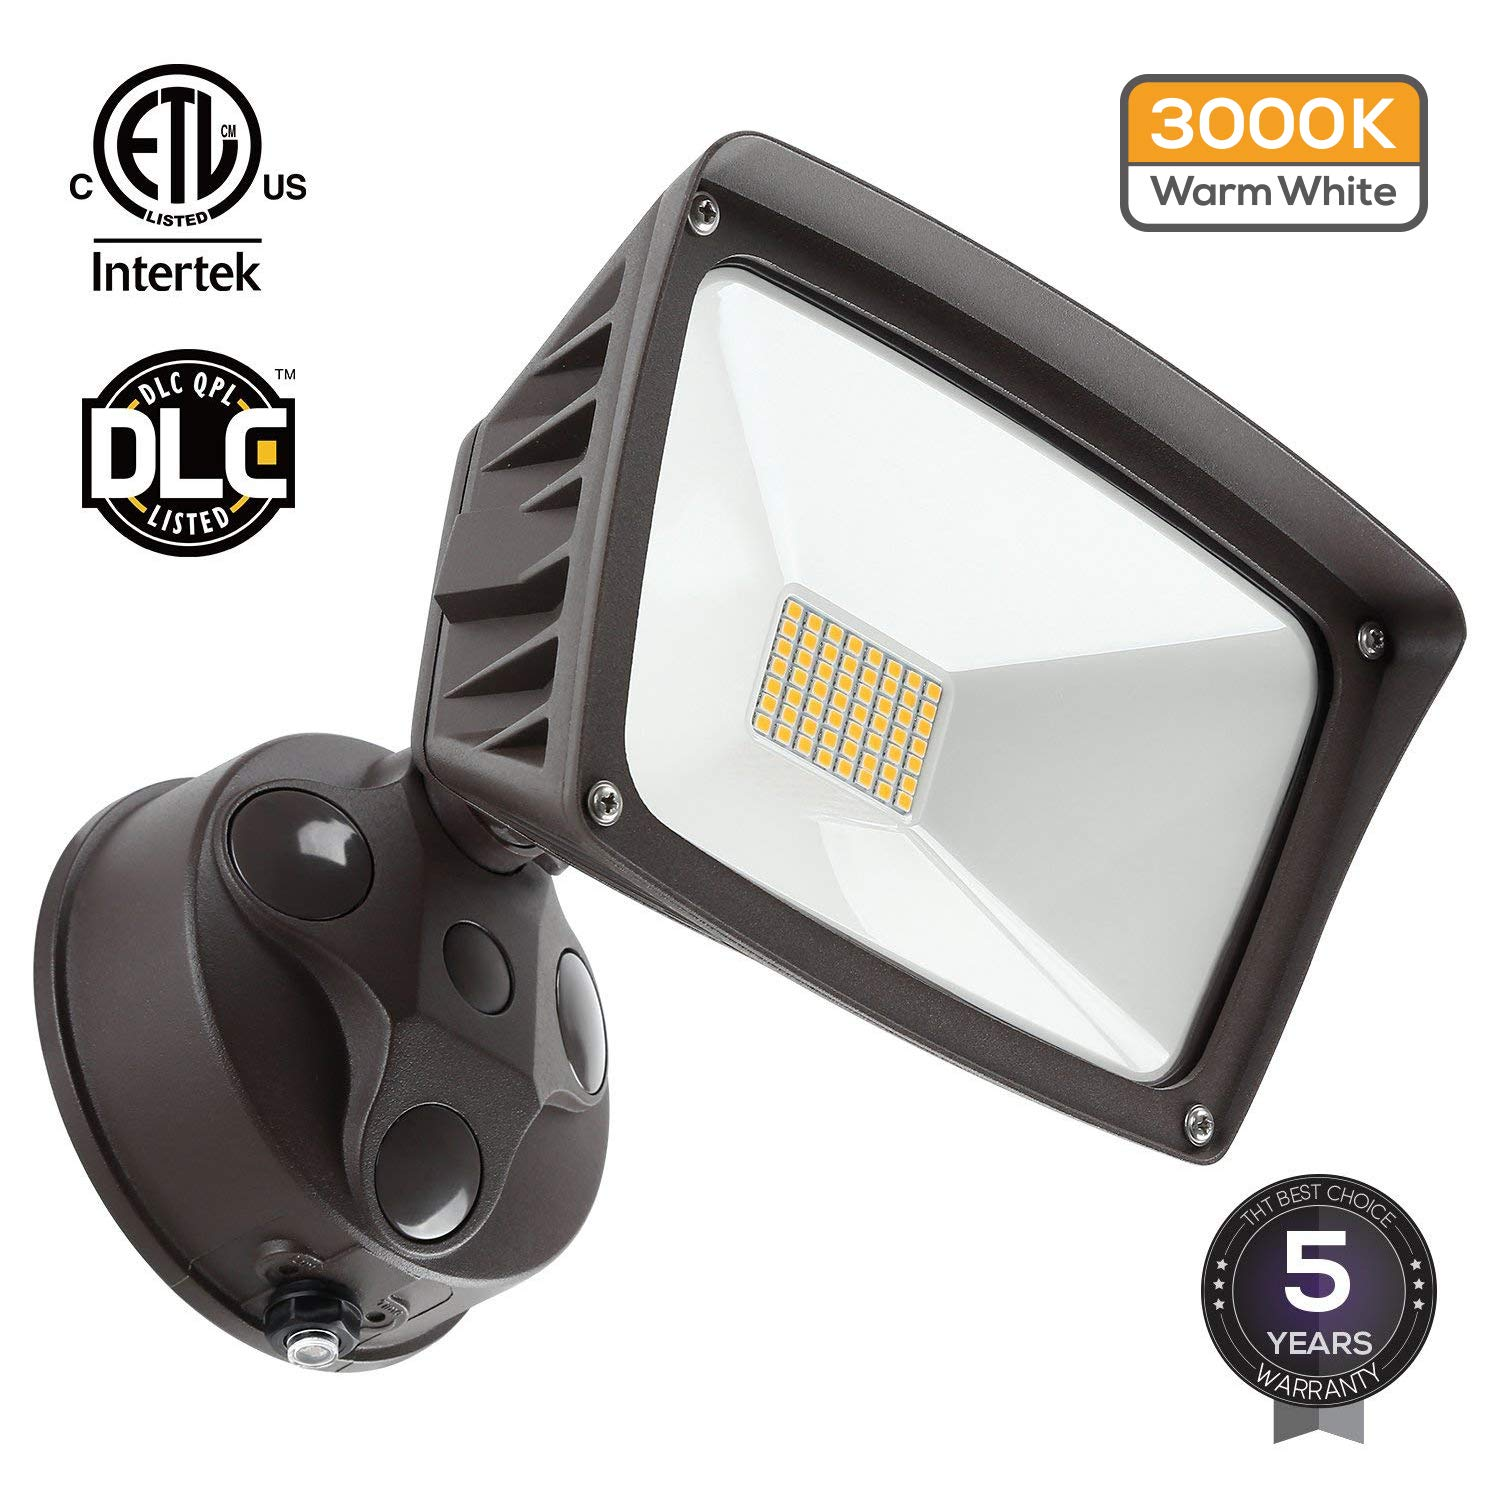 LED Outdoor Flood Light,Dusk-to-Dawn (Photocell Included), 3400lm Ultra-Bright Waterproof Security Floodlight, 28W (220W Equiv.), DLC and ETL-Listed Exterior Lighting for Yard Porch, 3000K Warm White by LEONLITE